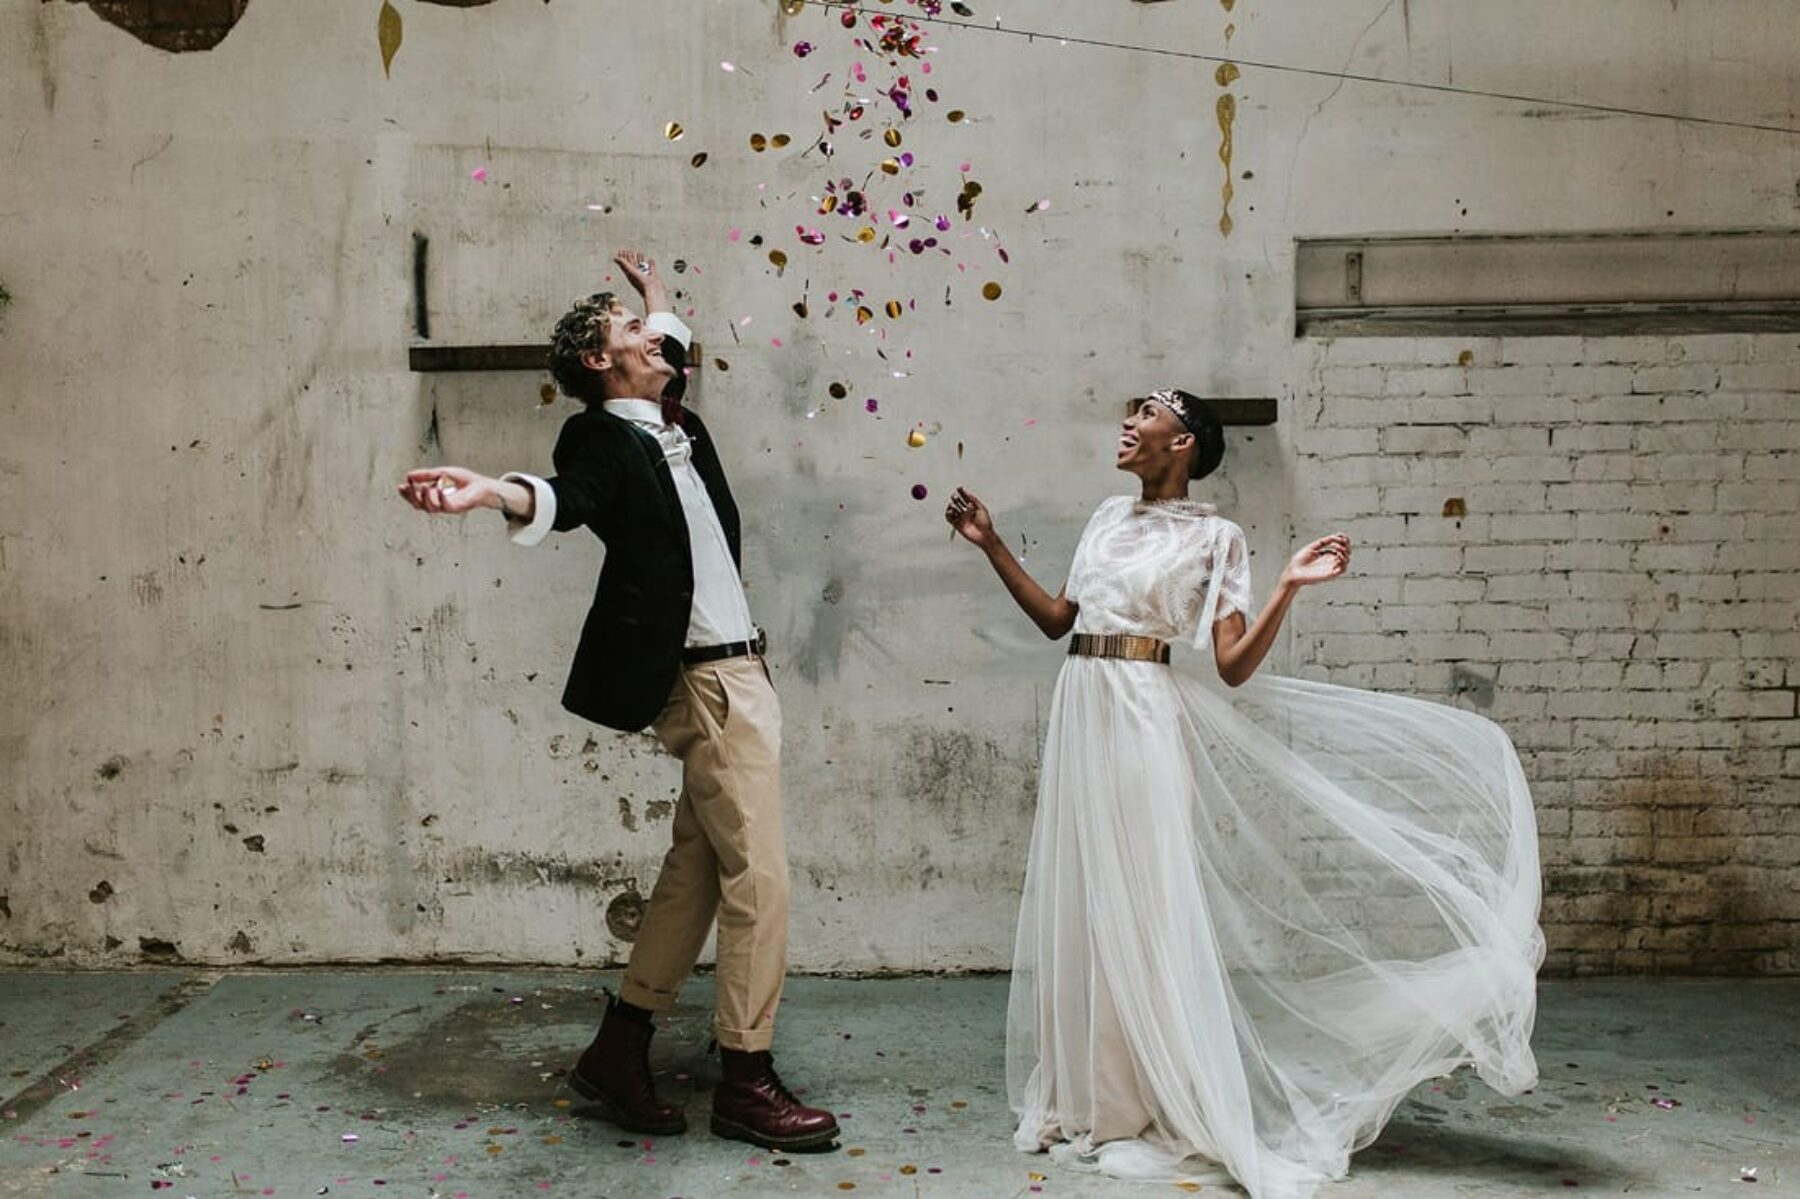 vitage/industrial wedding inspiration